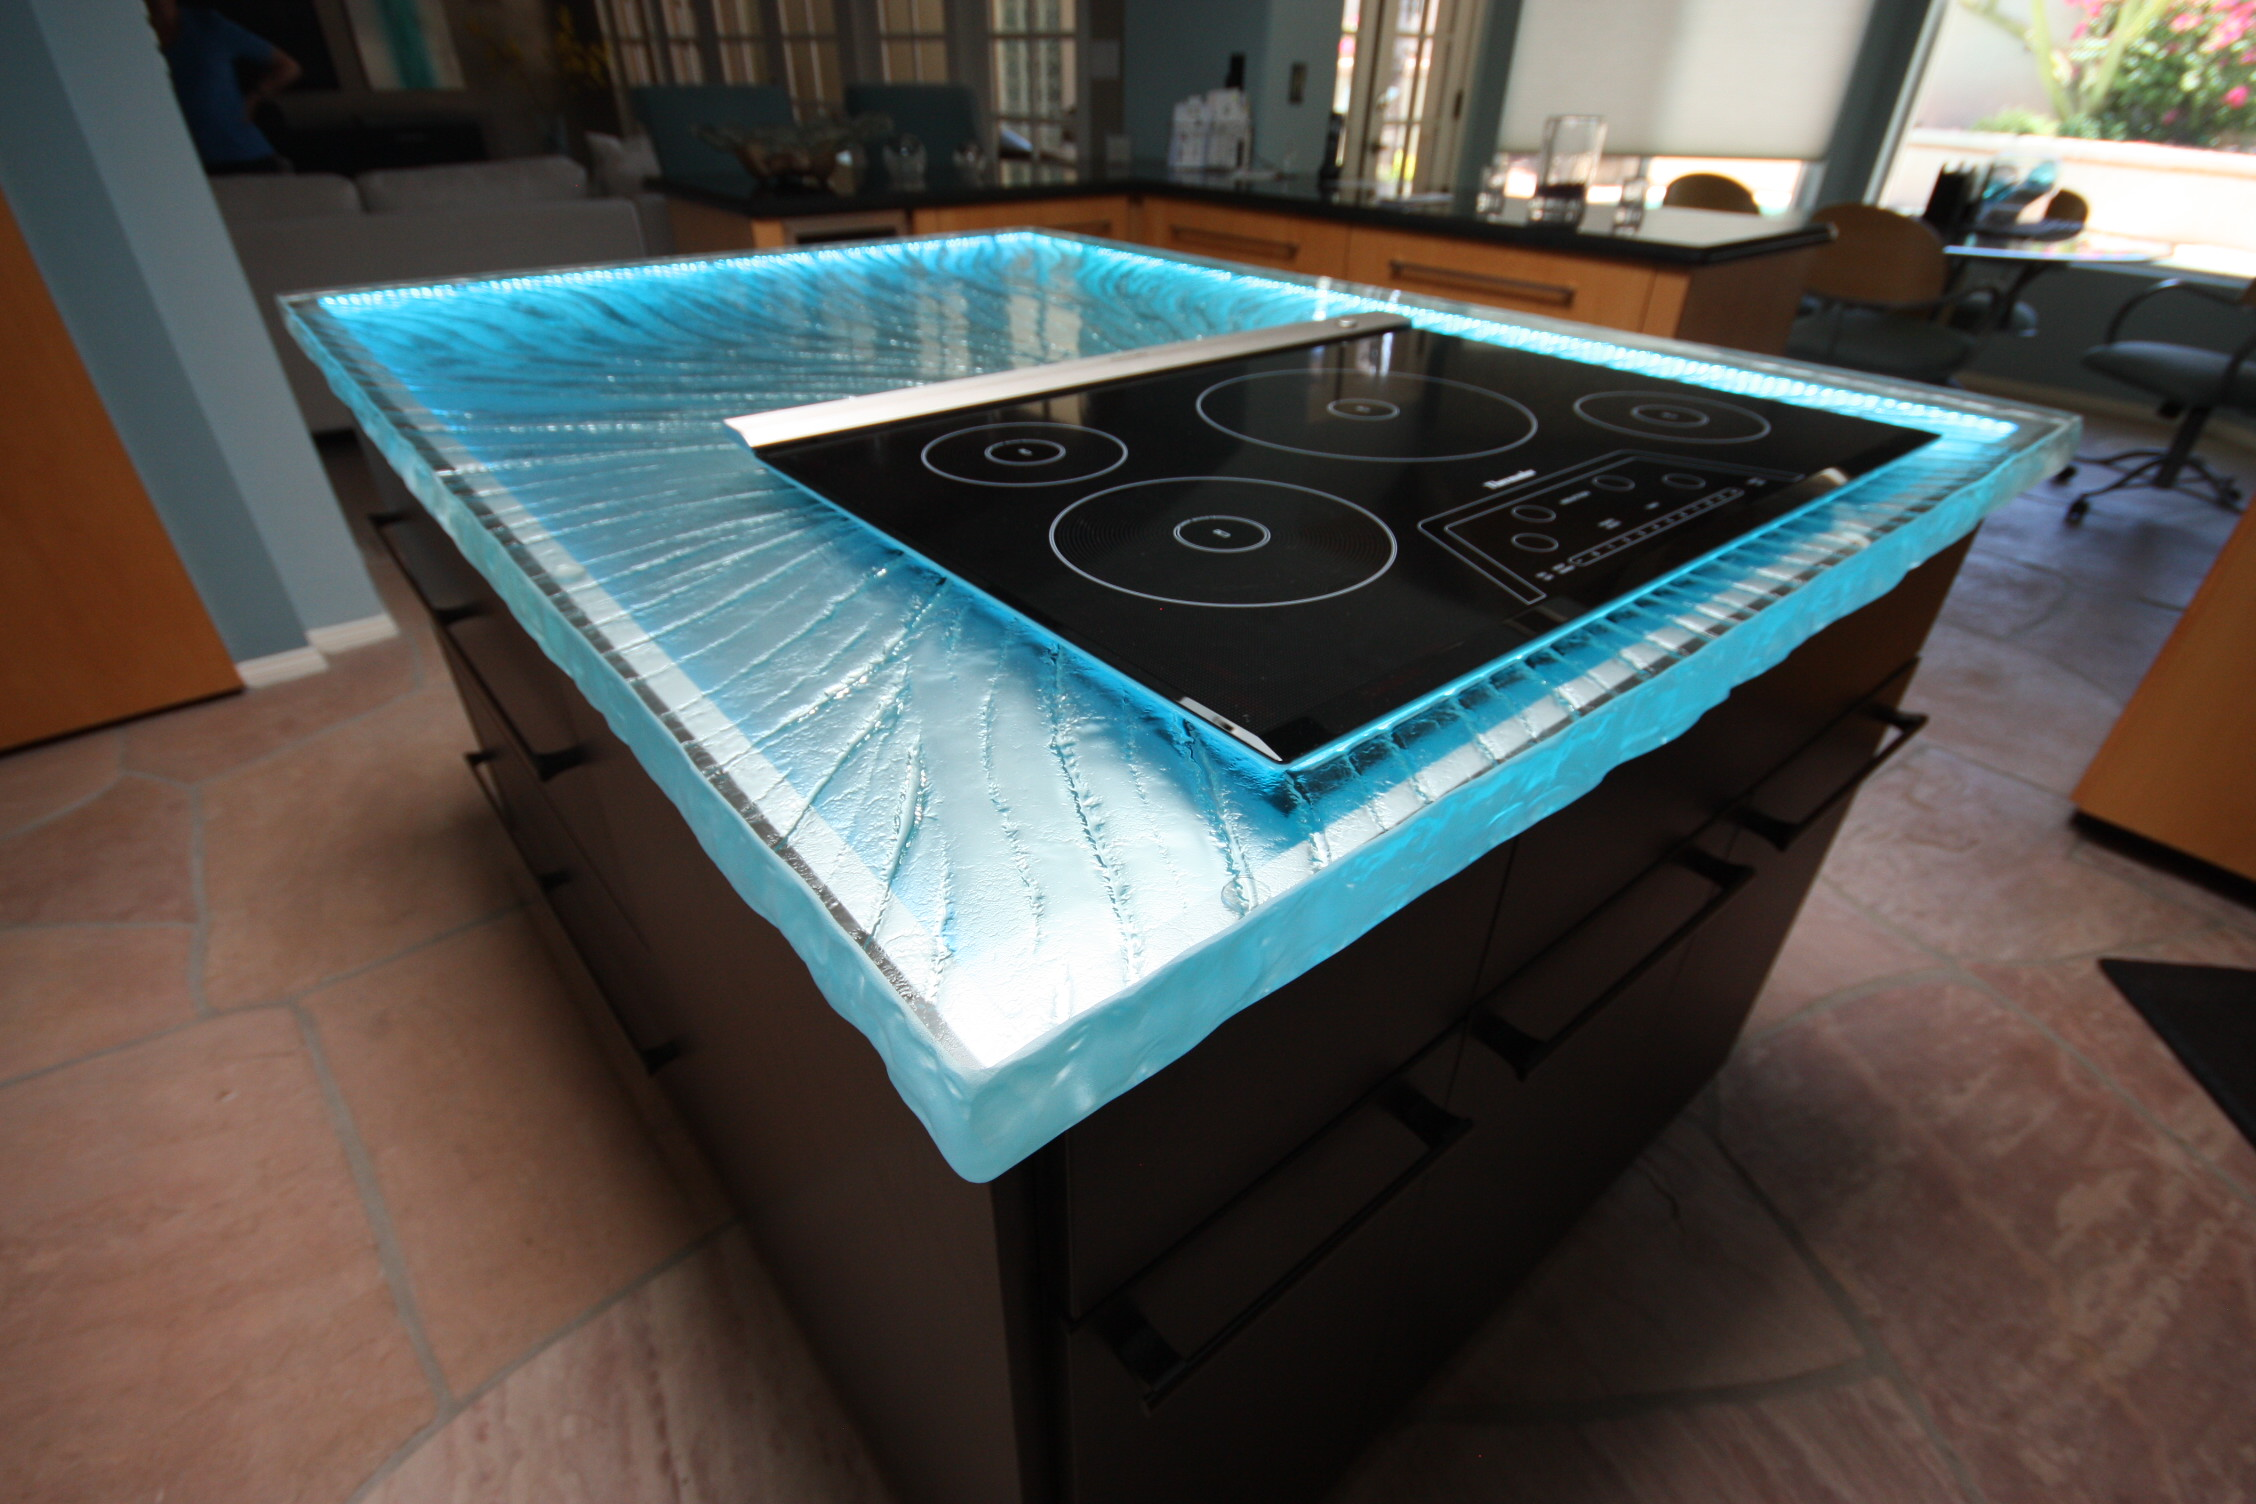 led lights and glass glass kitchen countertops kitchen glass counter top with blue lights